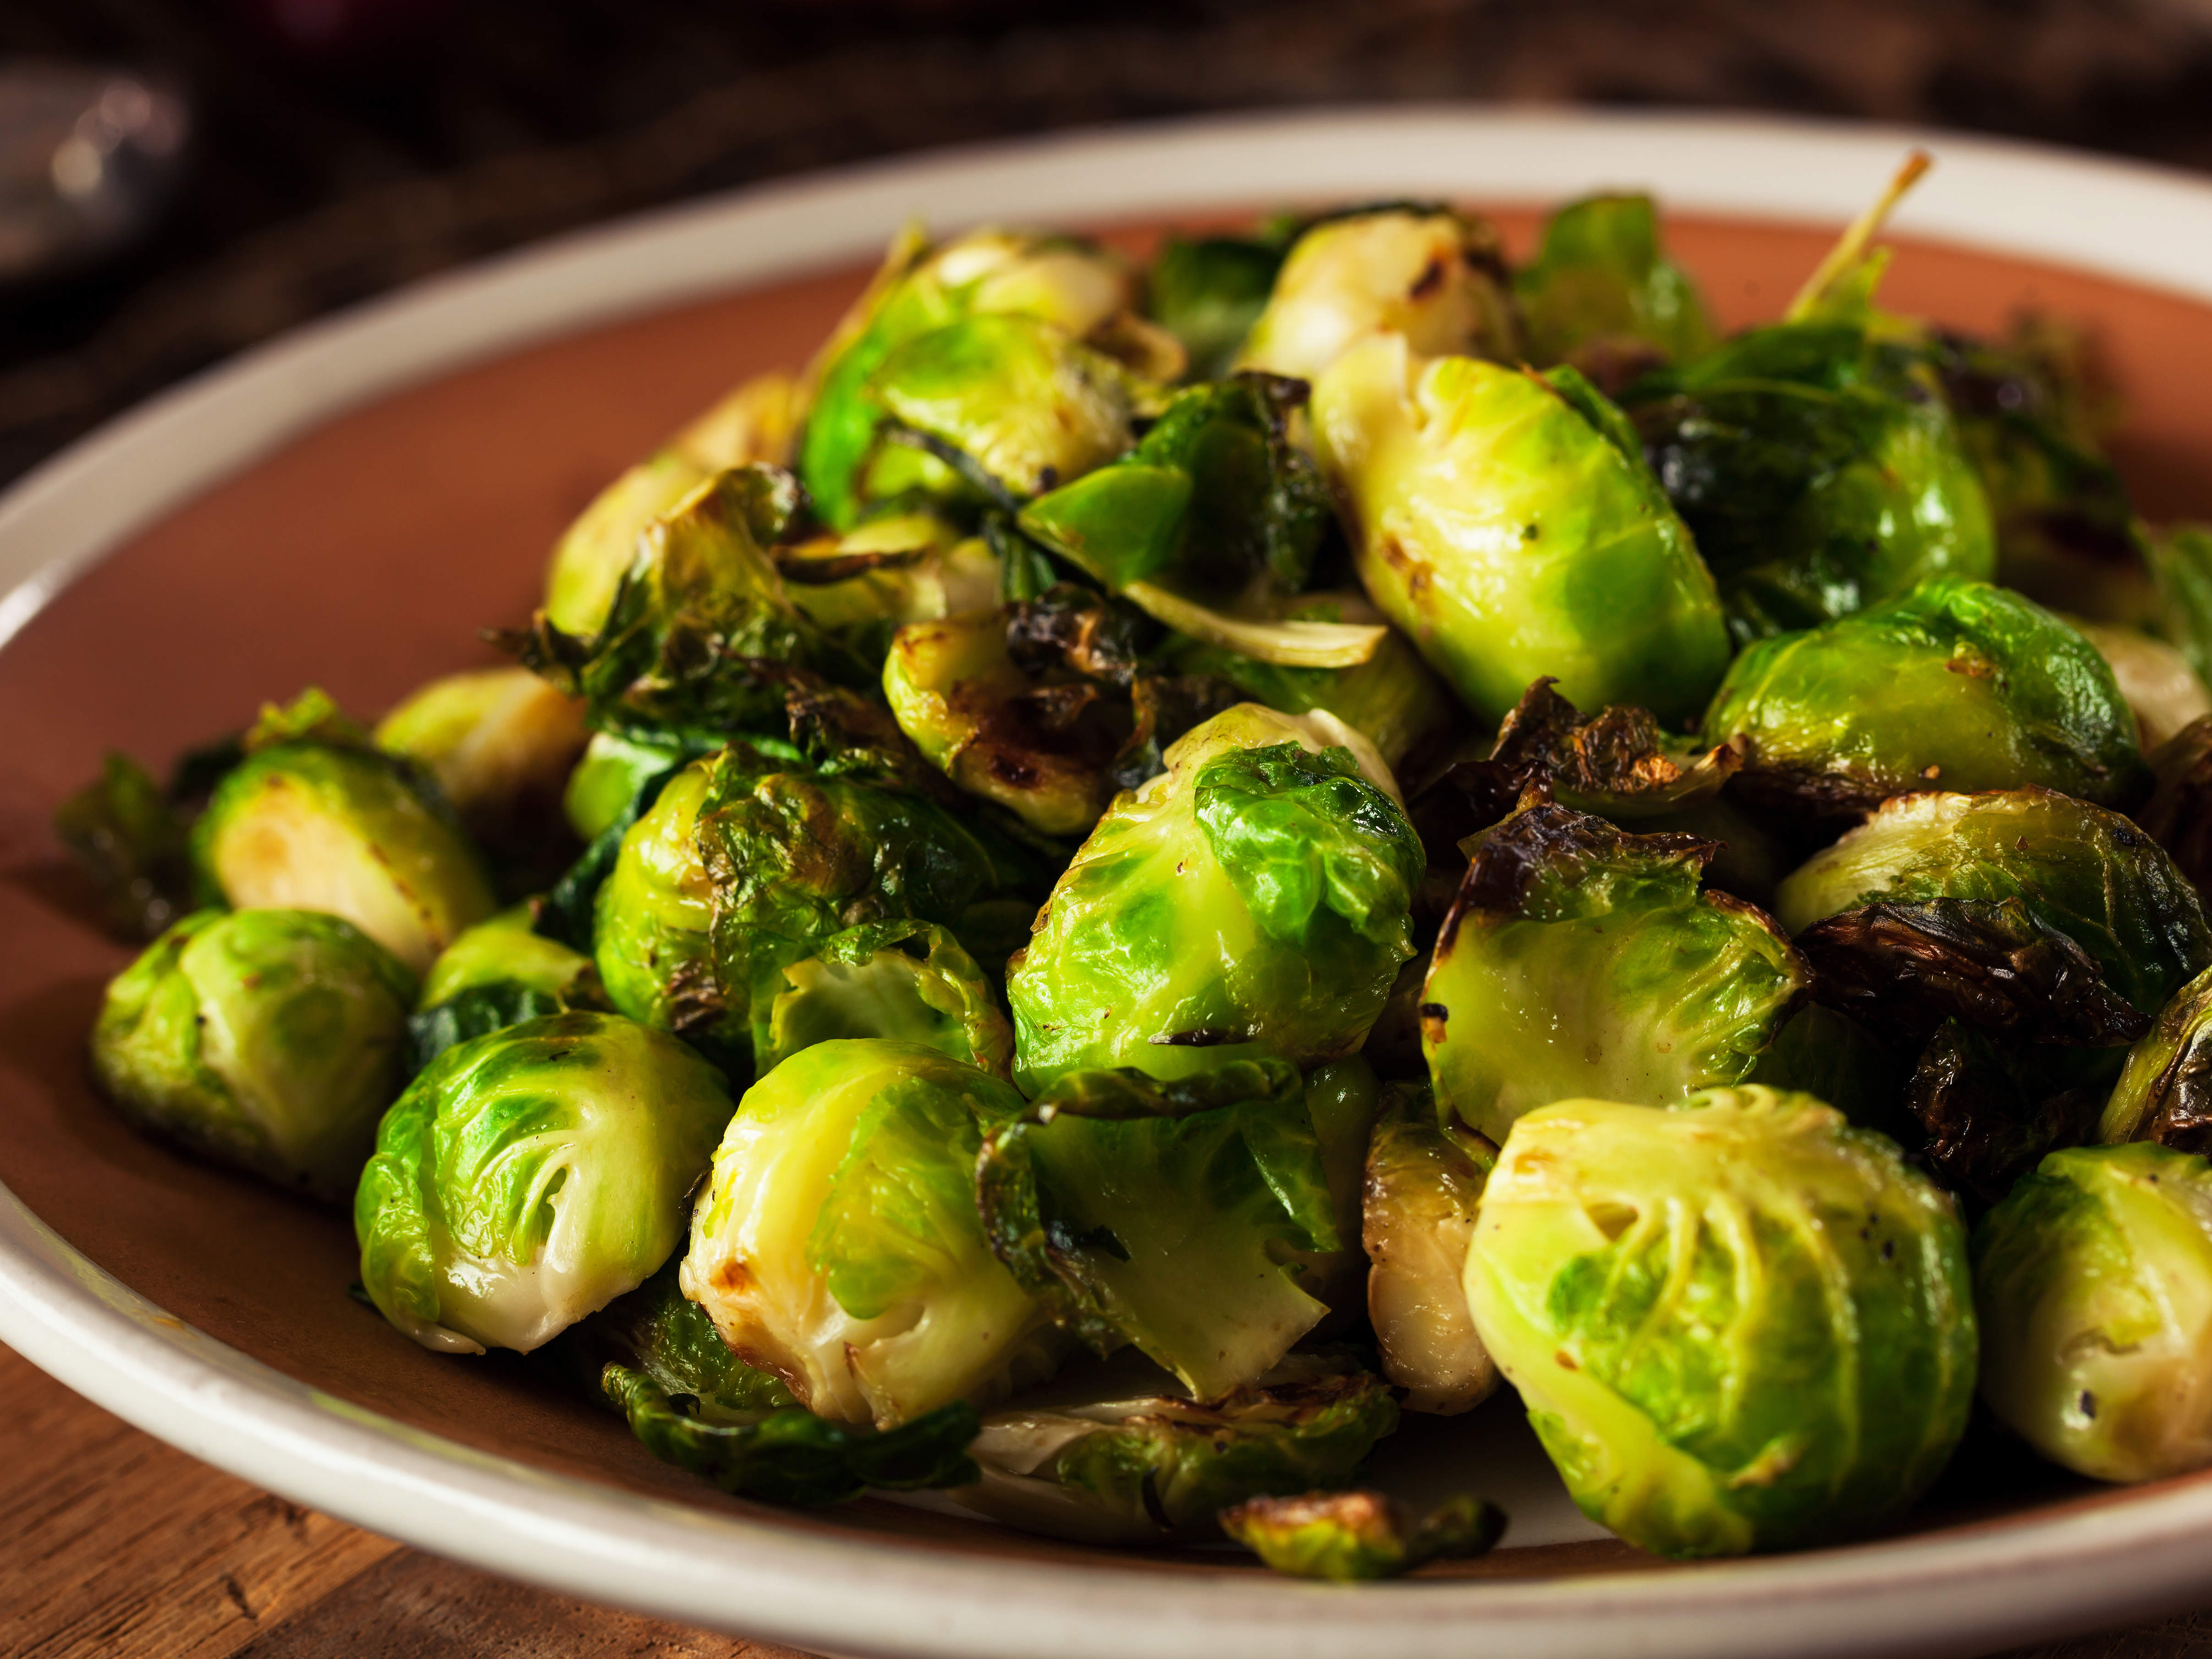 carmalized-brussels-sprouts-and-kale-with-crispy-capers-video